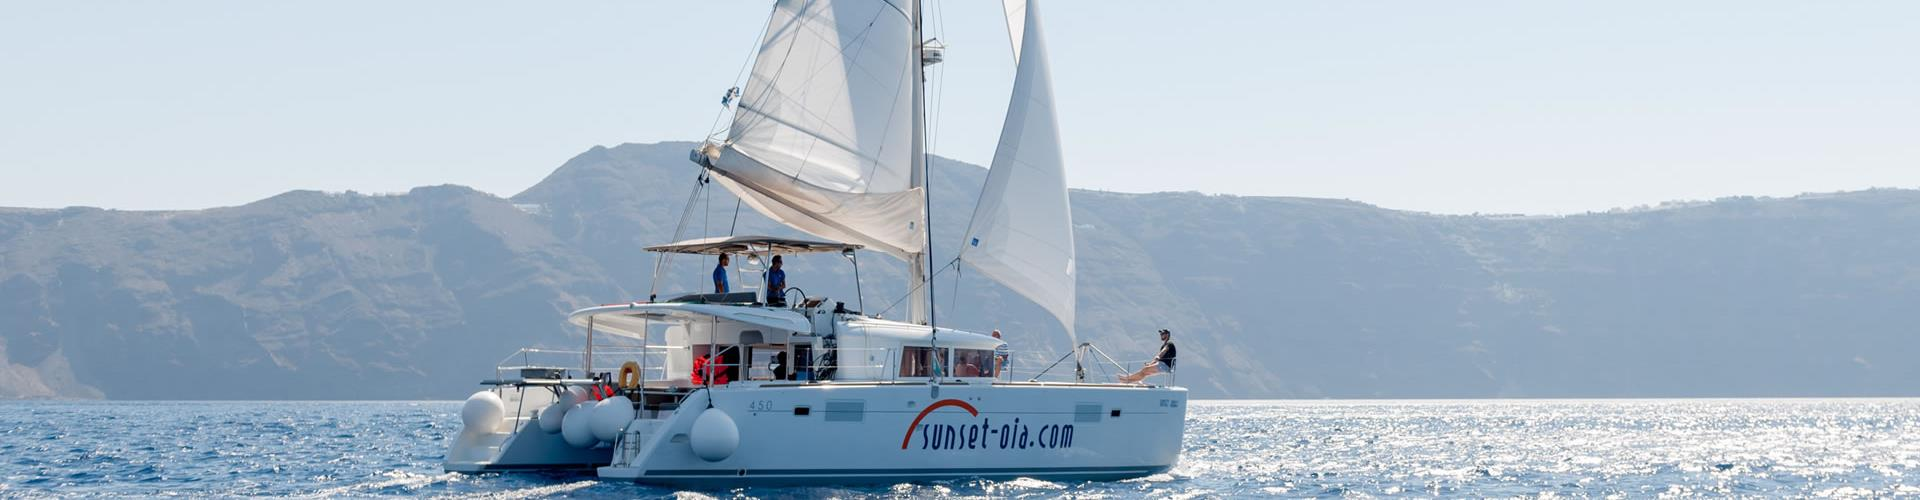 Photo of Luxurious Small-Group Catamaran Cruise in Santorini with BBQ and Drinks